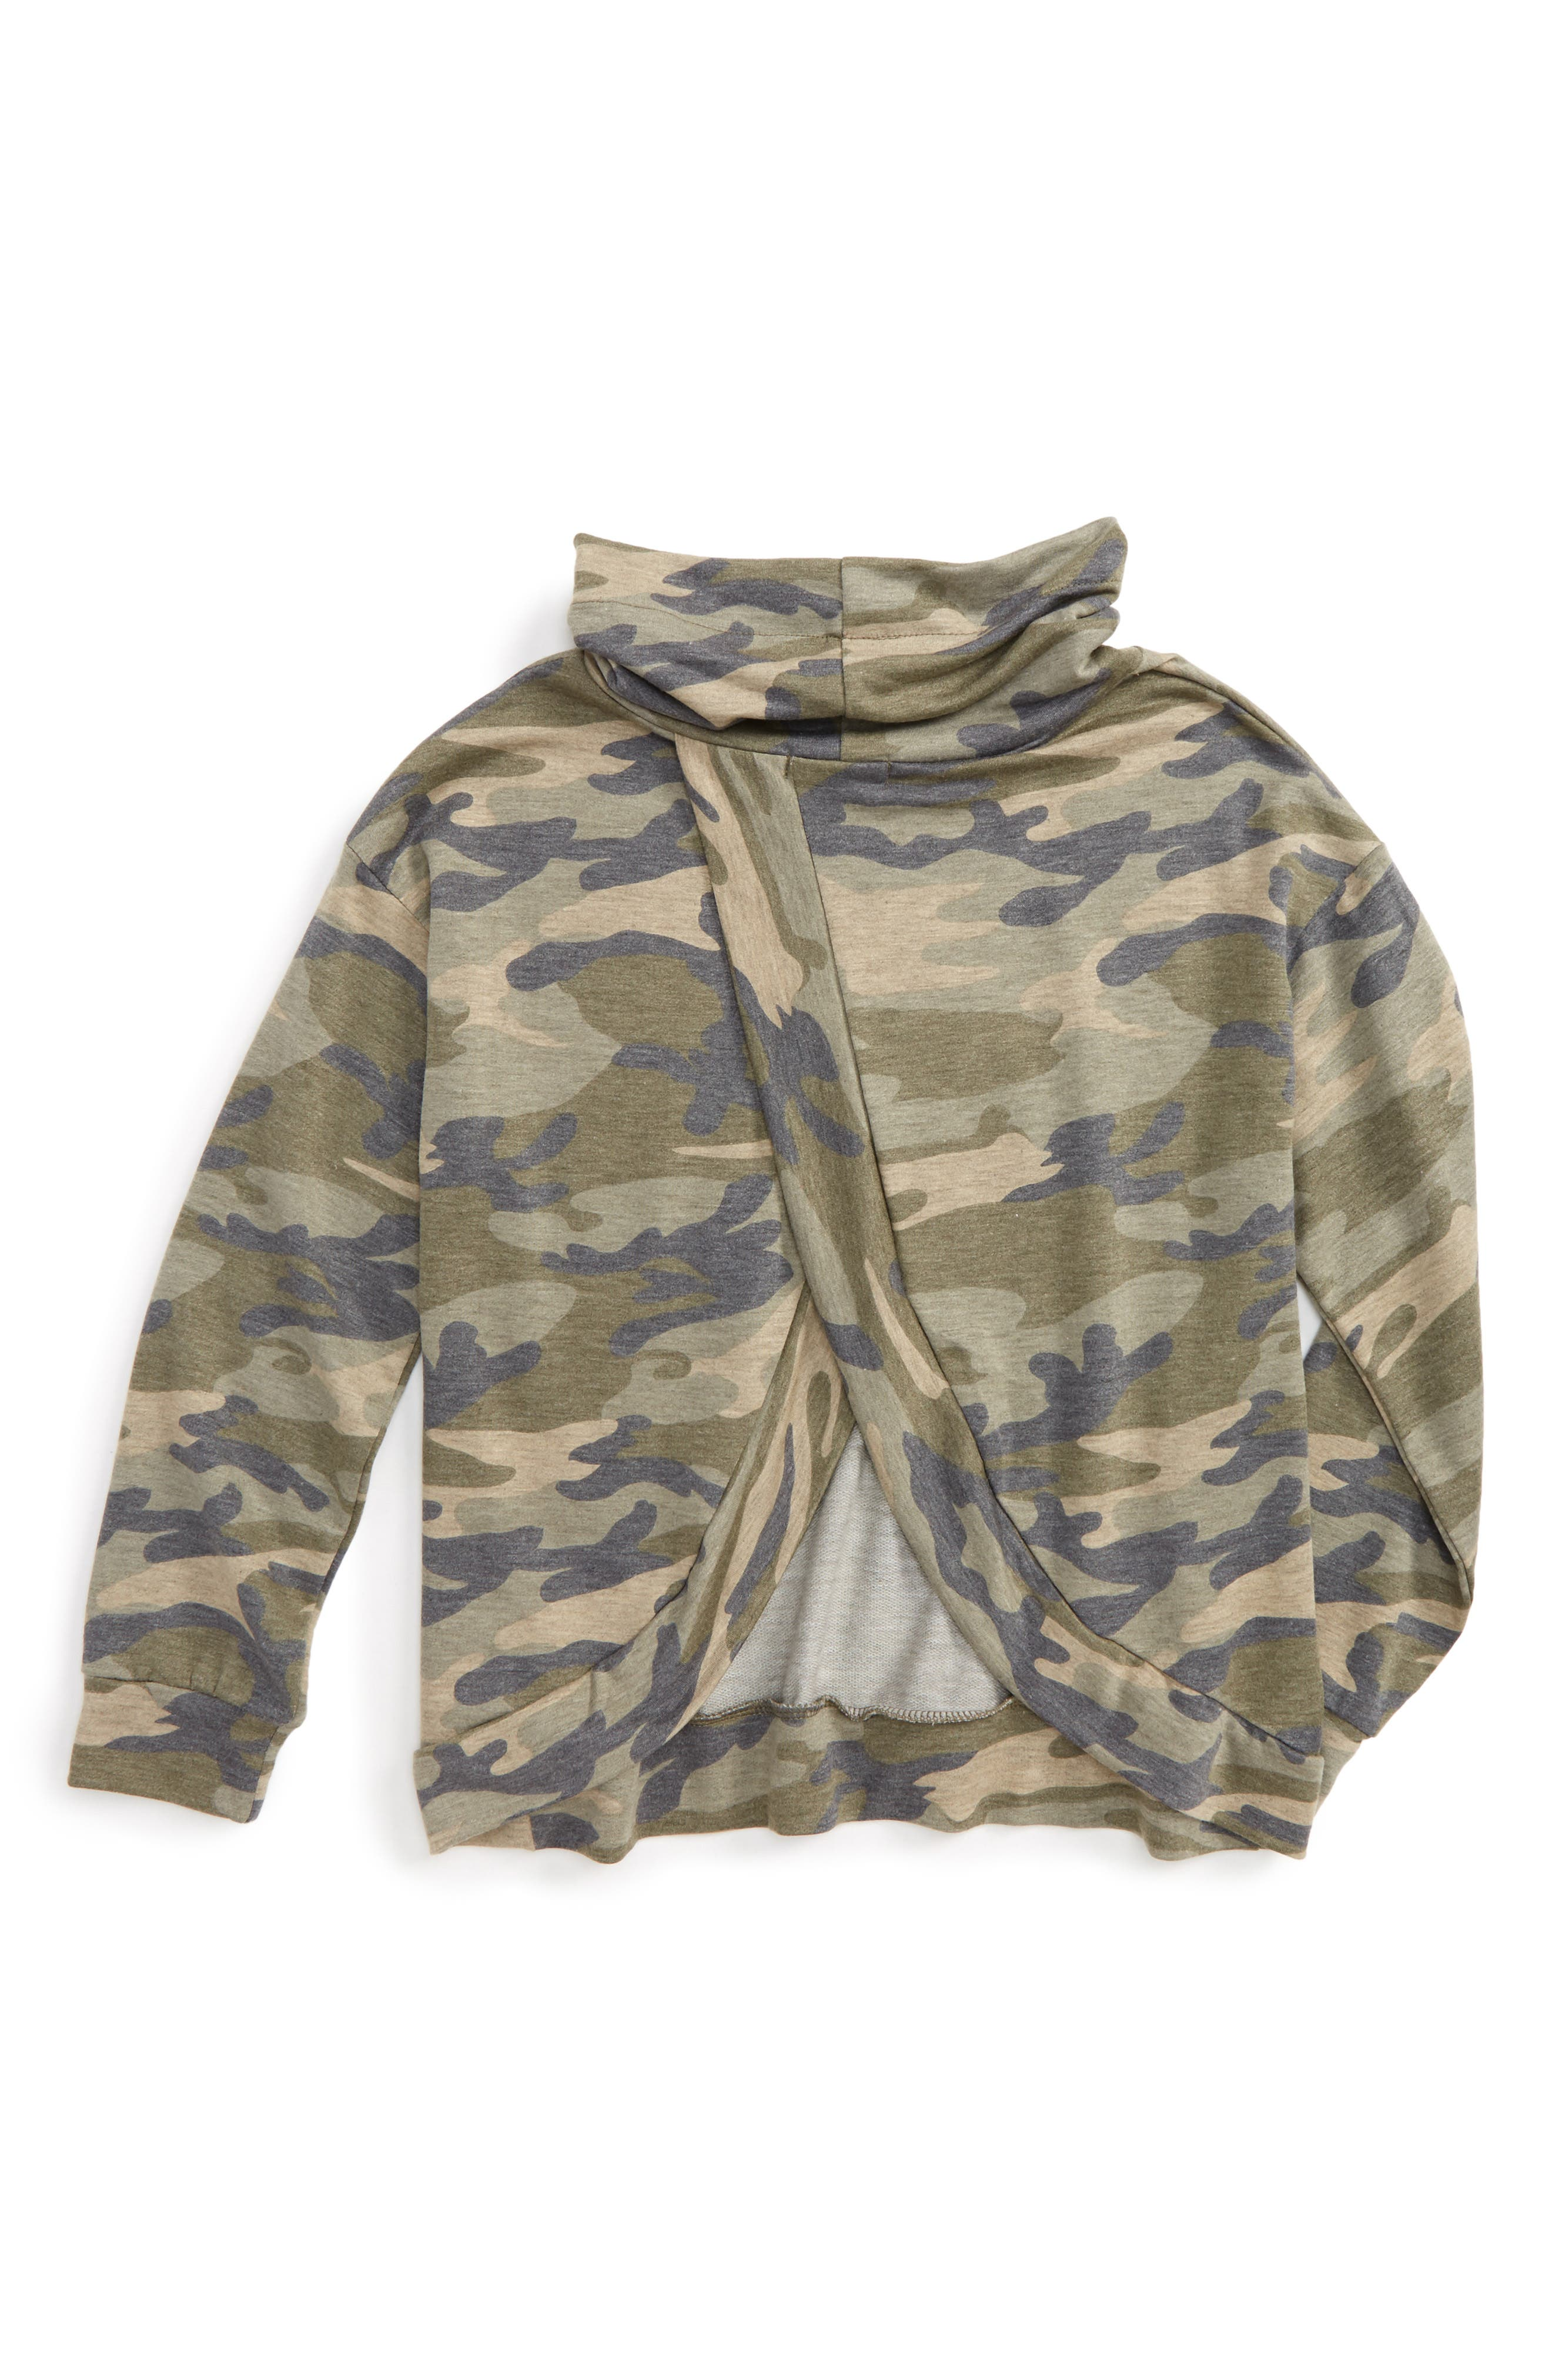 Camo Print Cowl Neck Sweatshirt,                             Alternate thumbnail 3, color,                             073 Military